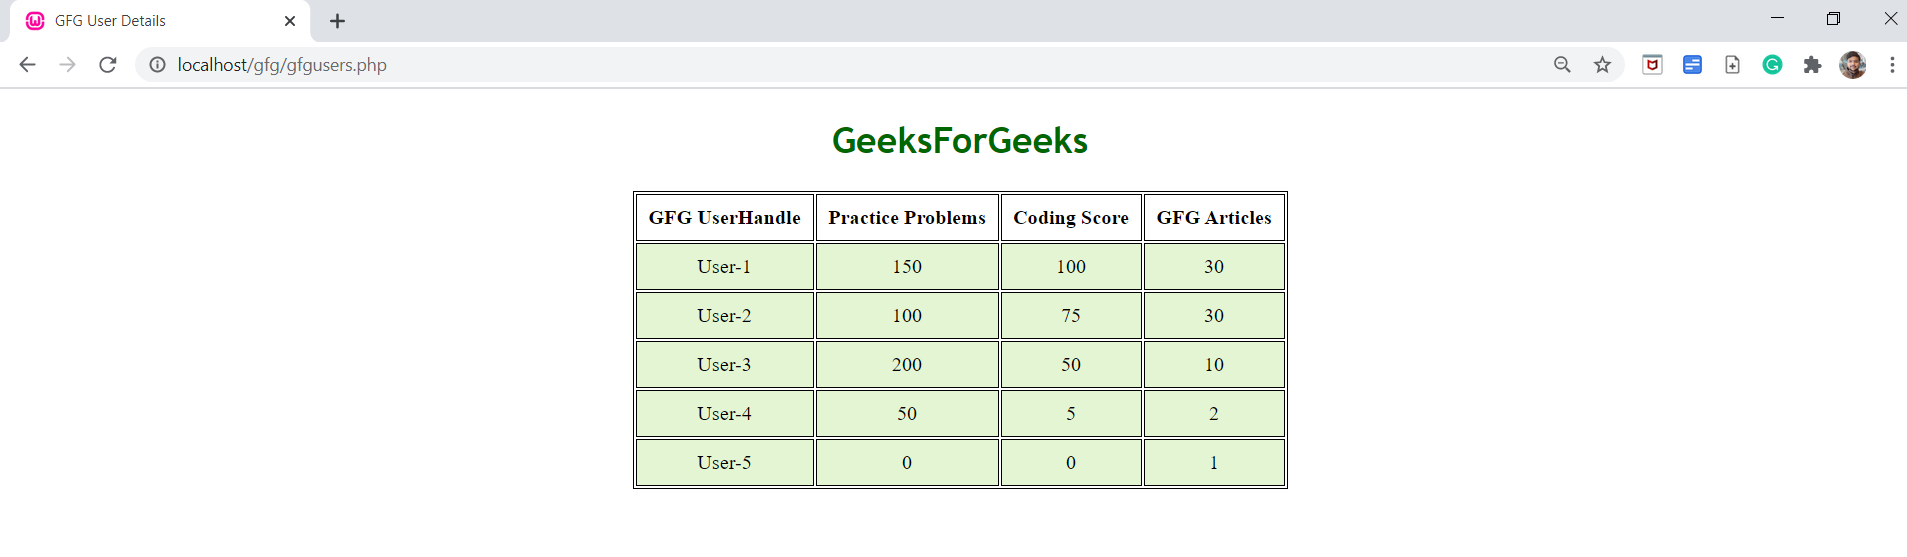 How To Fetch Data From Json File And Display In Html Table Using Jquery Geeksforgeeks